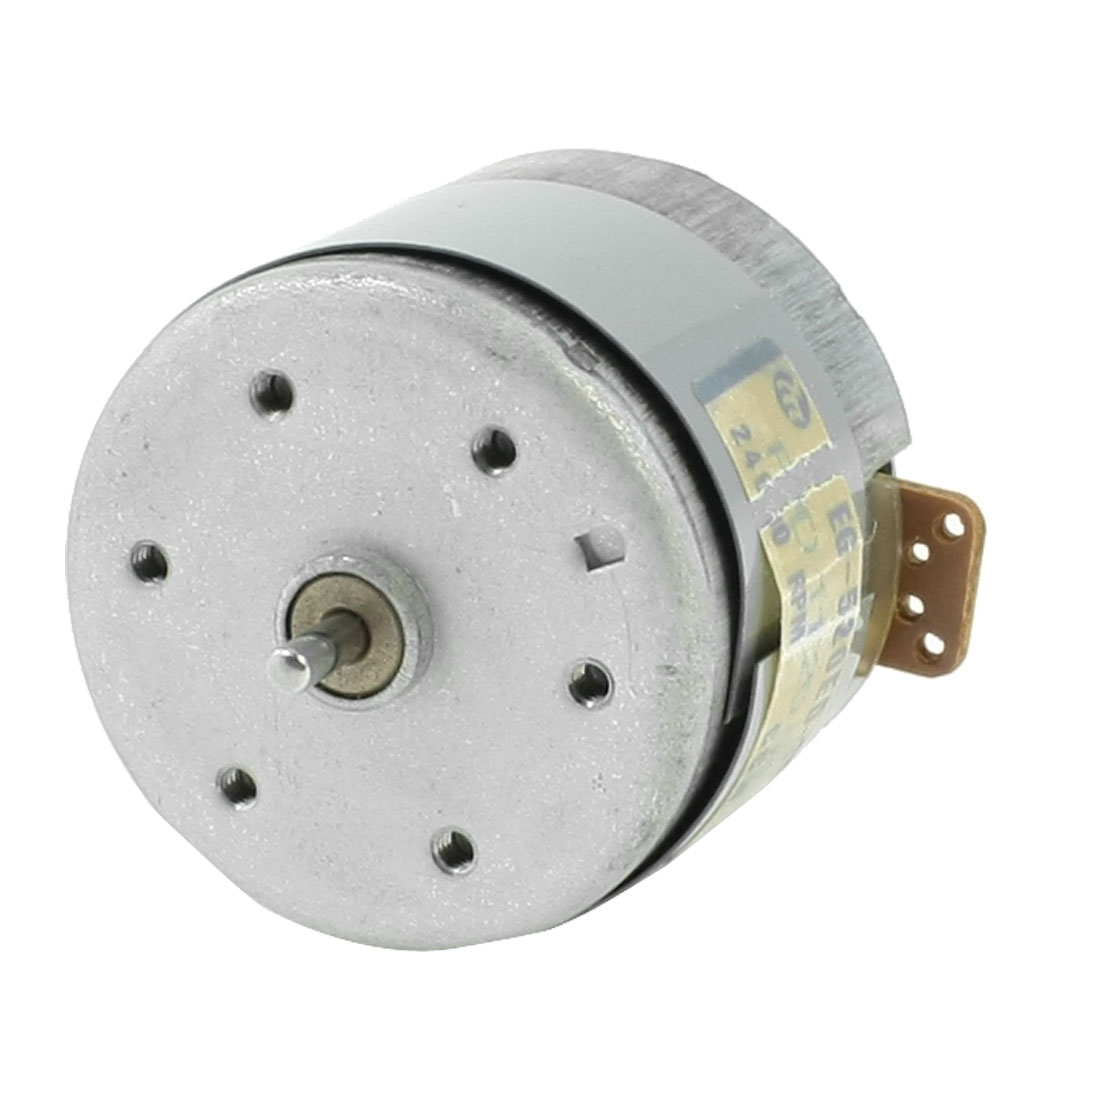 DC 13V 0.01A 2400RPM CD VCD DVD Electric Spindle Mini Motor